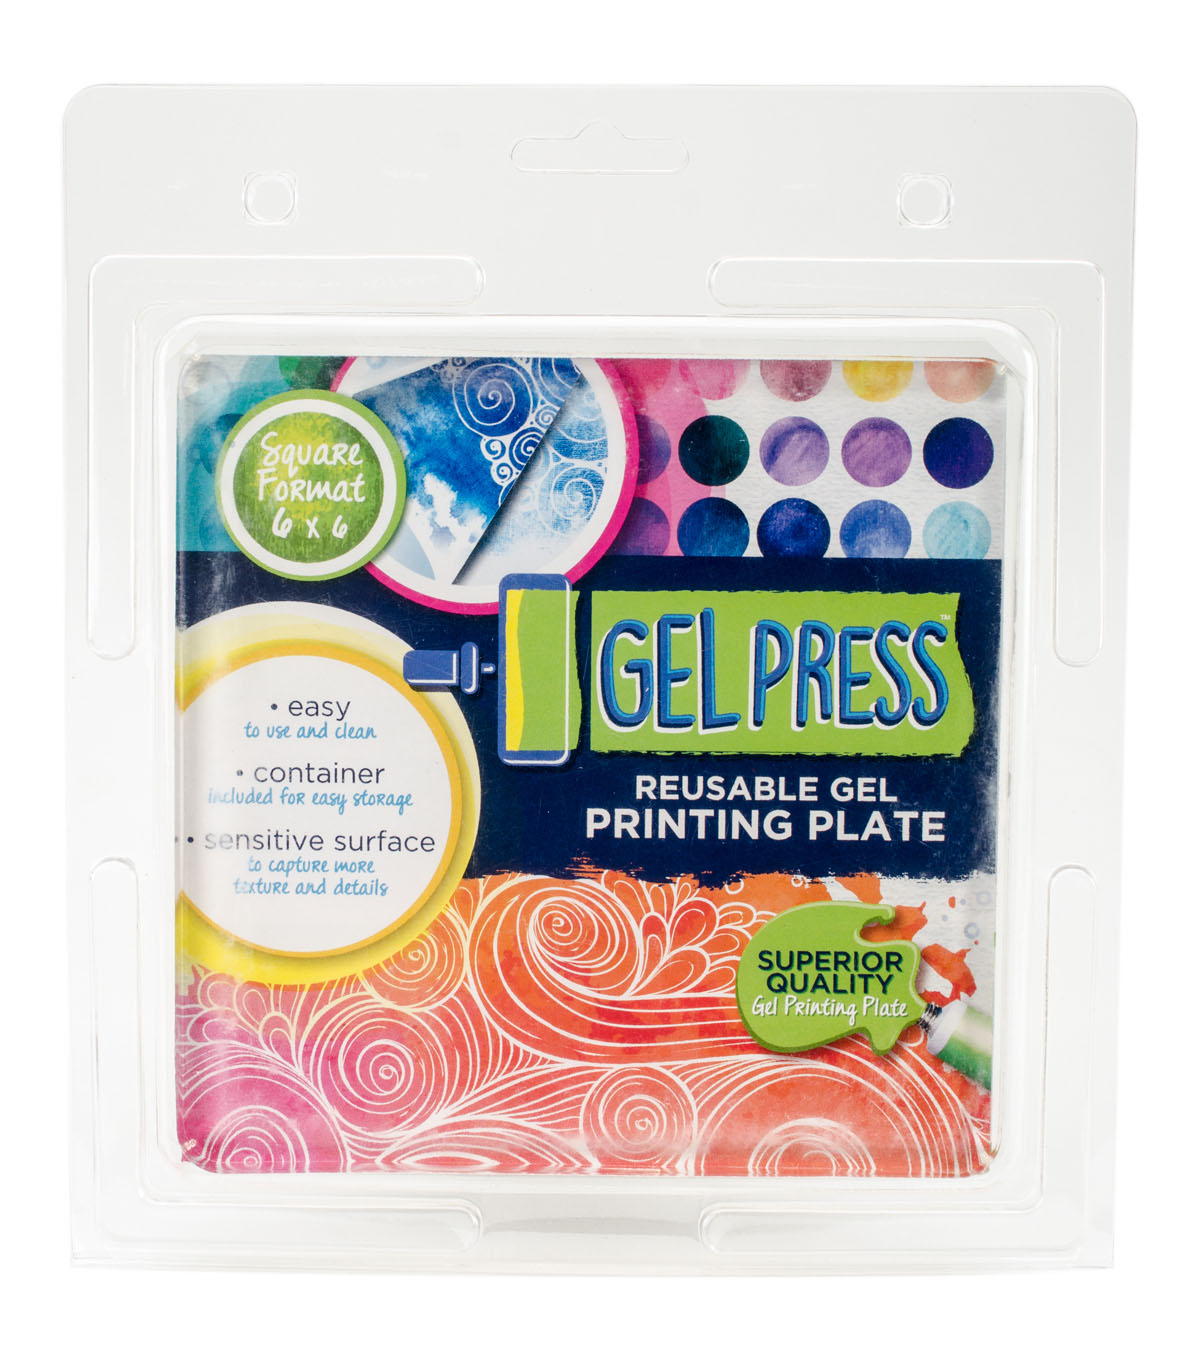 Gel Press 6\u0027\u0027x6\u0027\u0027 Square Reusable Gel Printing Plate